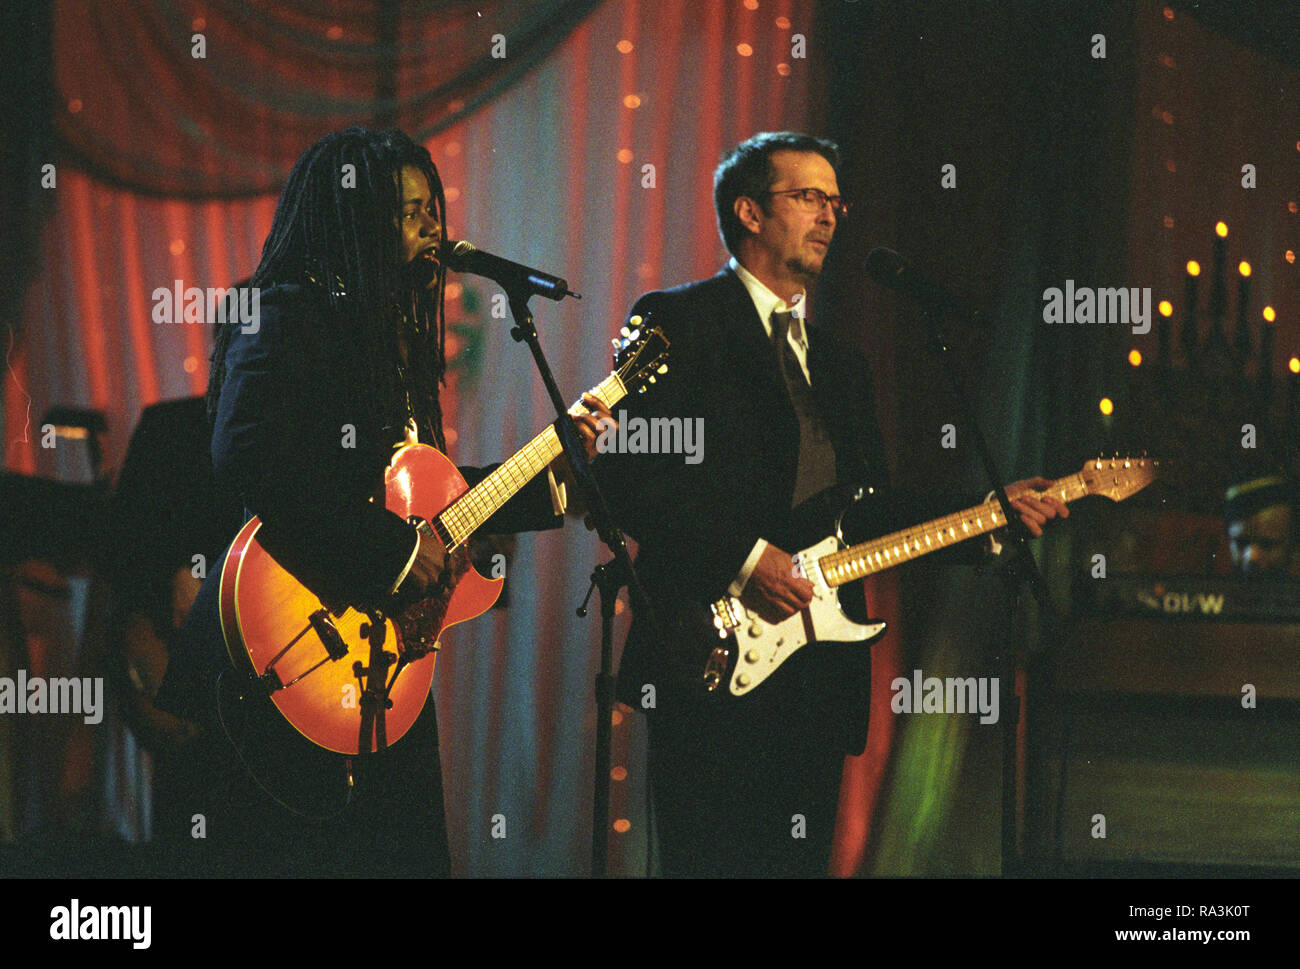 Eric Clapton White Christmas.12 17 1998 Photograph Of Tracy Chapman And Eric Clapton